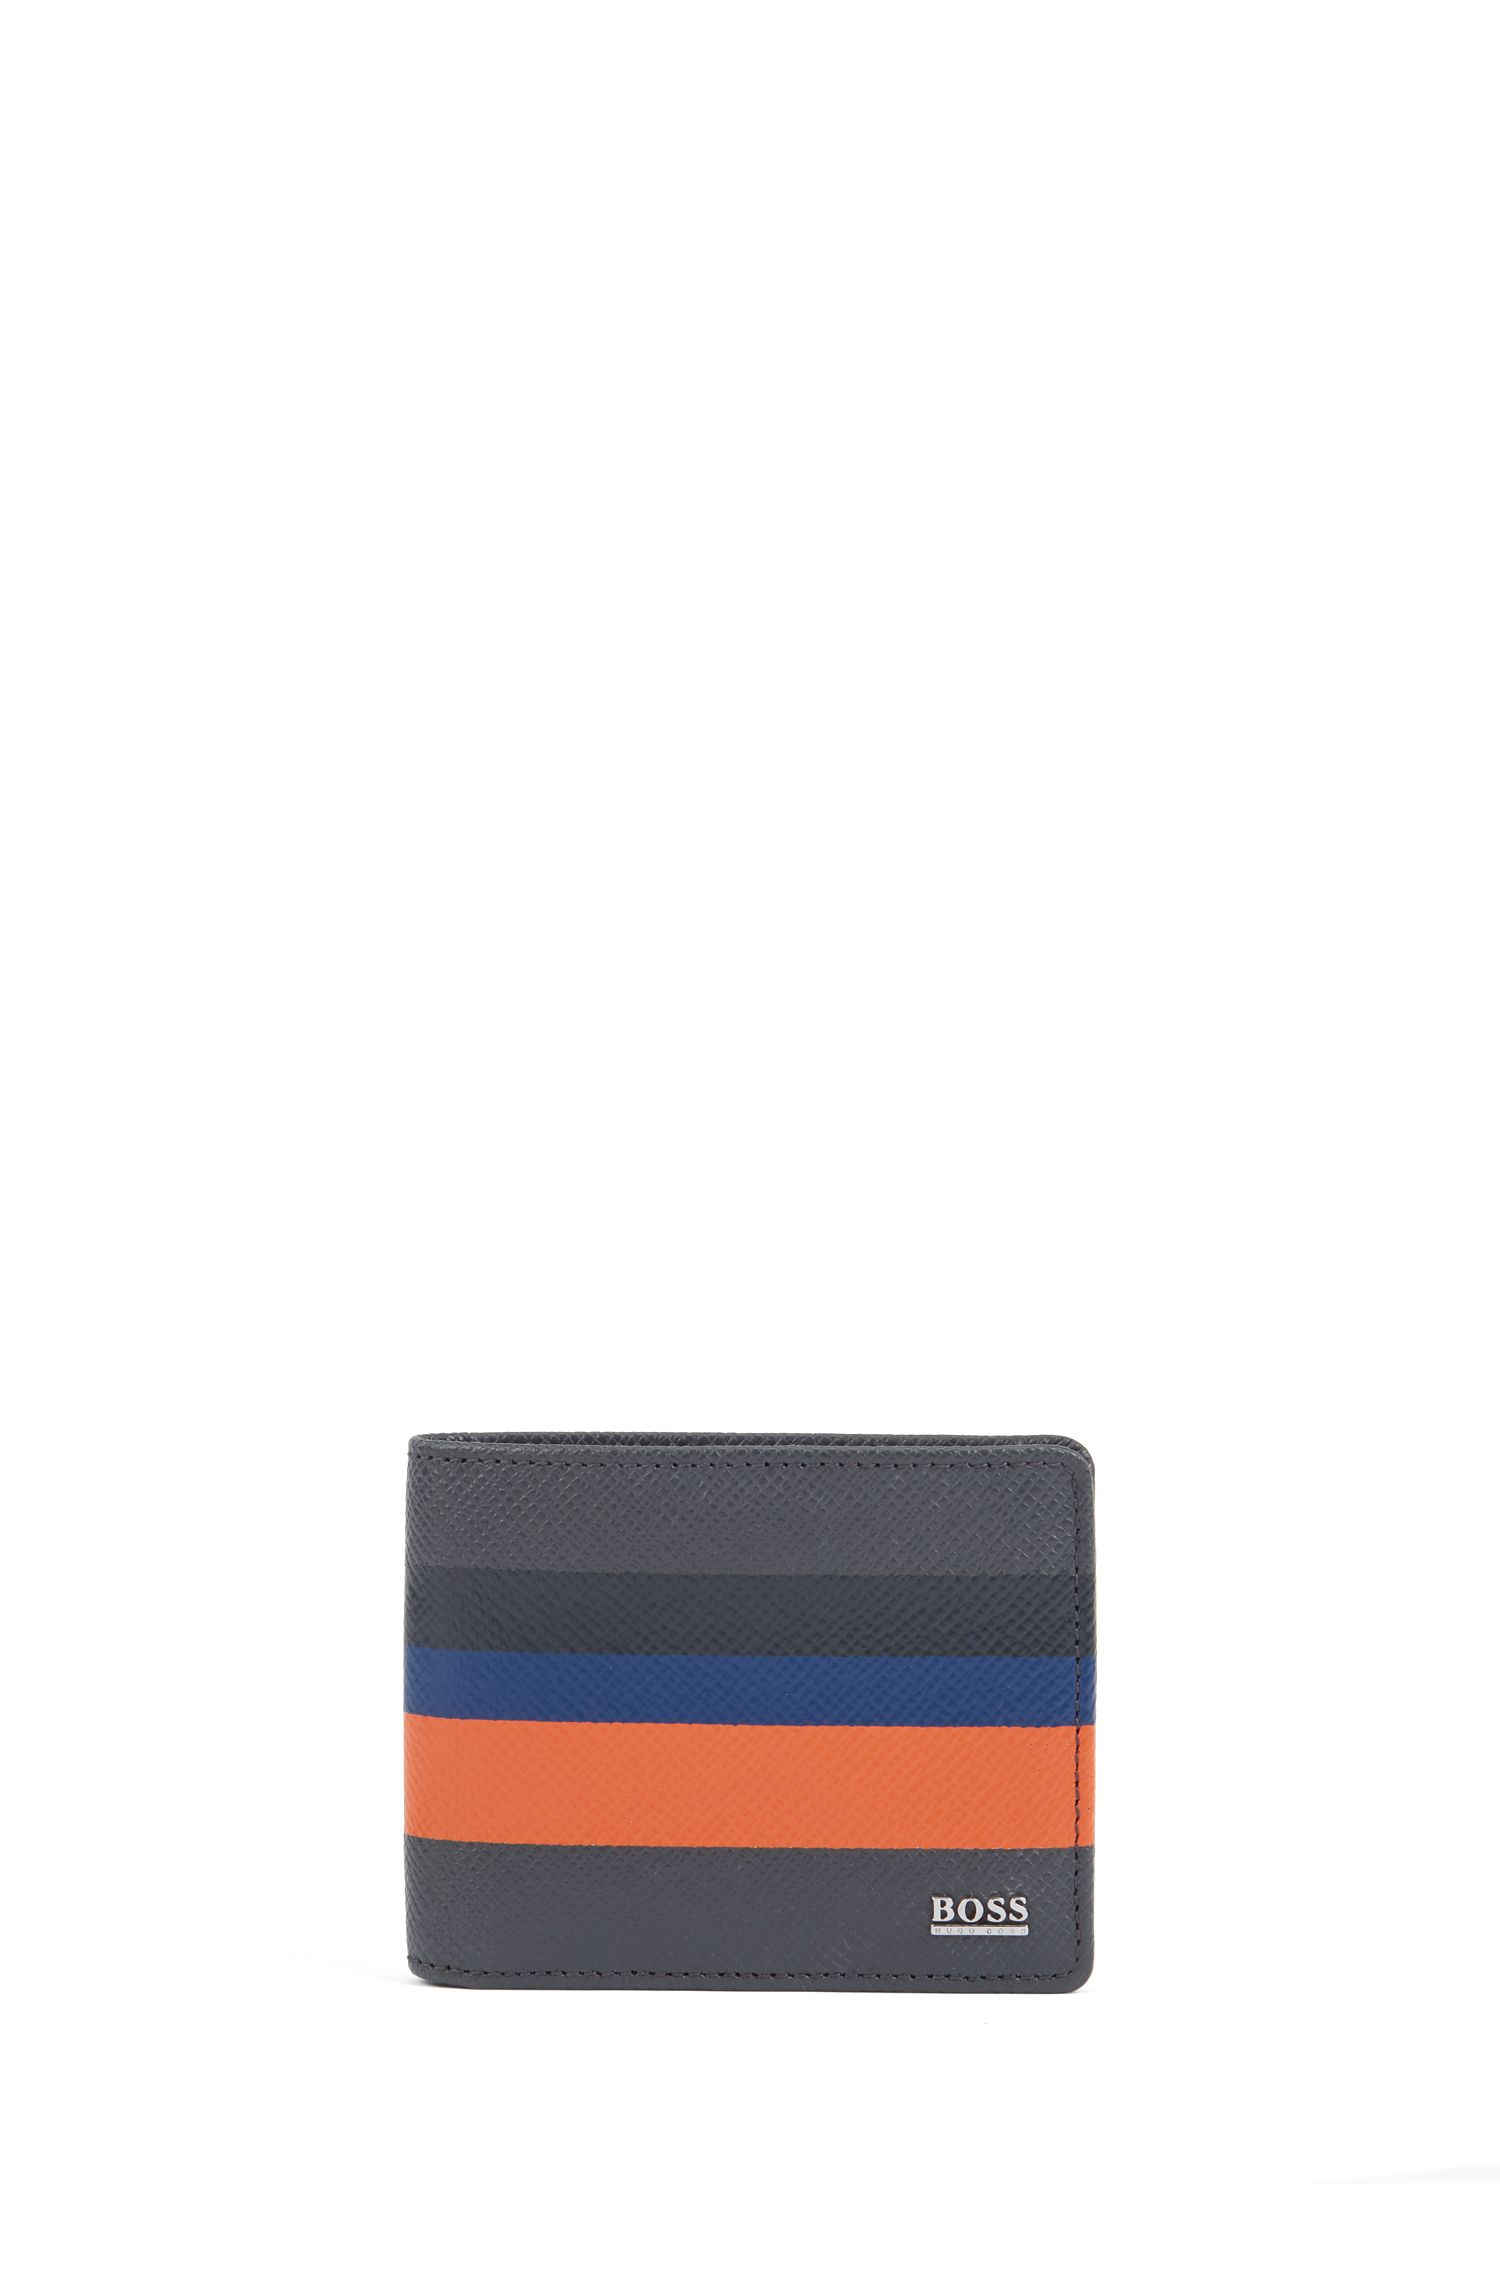 Signature Collection billfold wallet in colorblock palmellato leather, Dark Grey